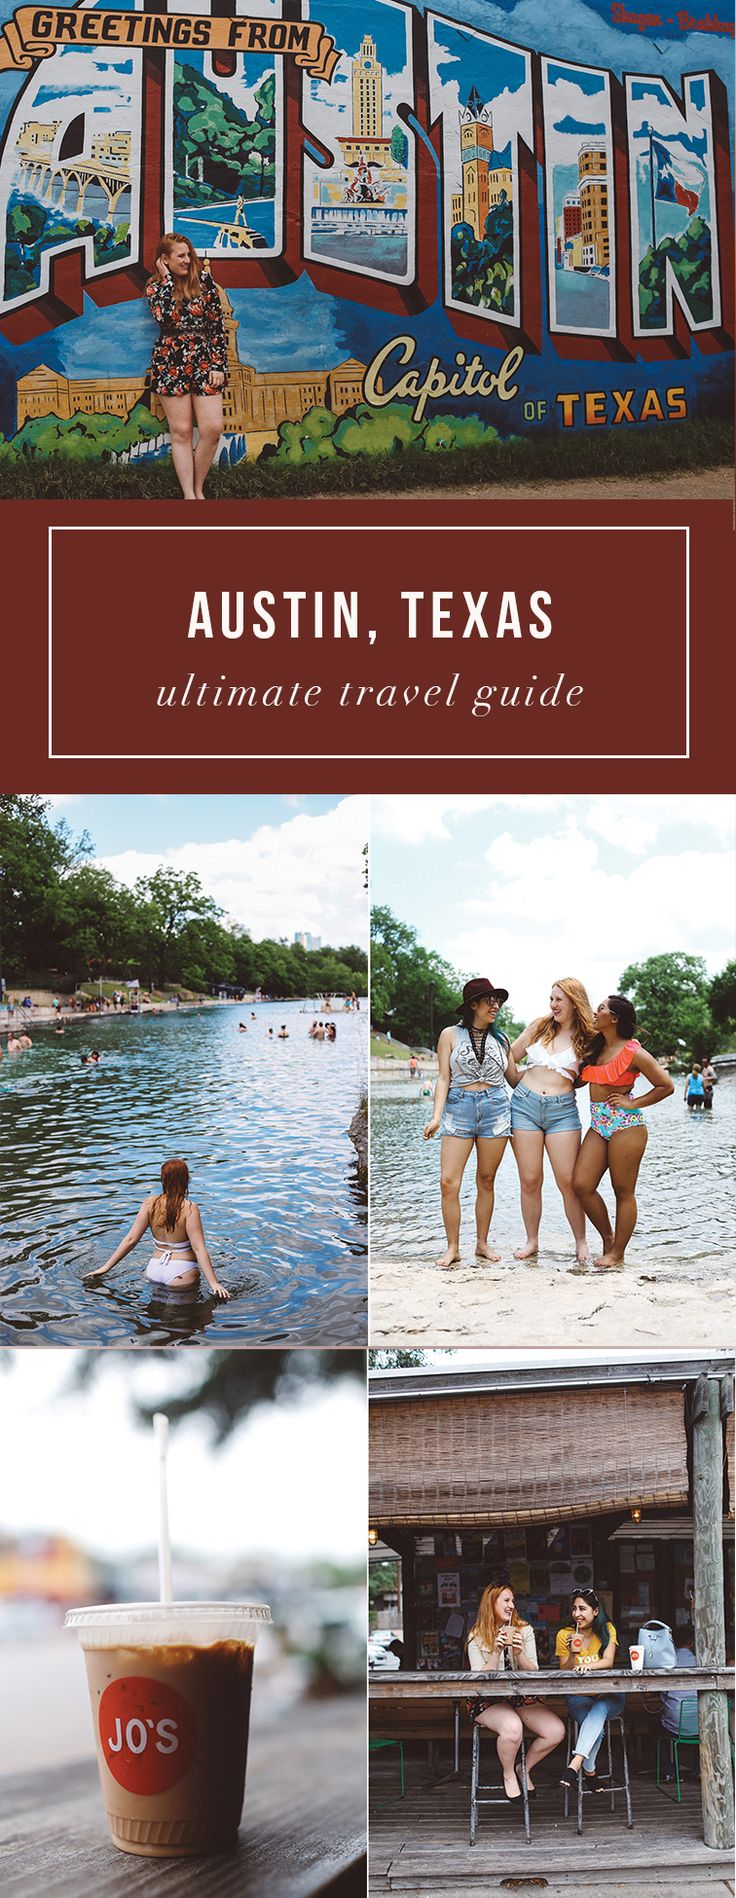 72 Hours in Austin, Texas, travel guide. Everything to see and do in Austin. Jo's Coffee, I love you so much wall, Barton Springs. Read here: http://whimsysoul.com/ultimate-austin-travel-guide/ #austin #travelguide #bacheloretteparty #girlstrip #texas